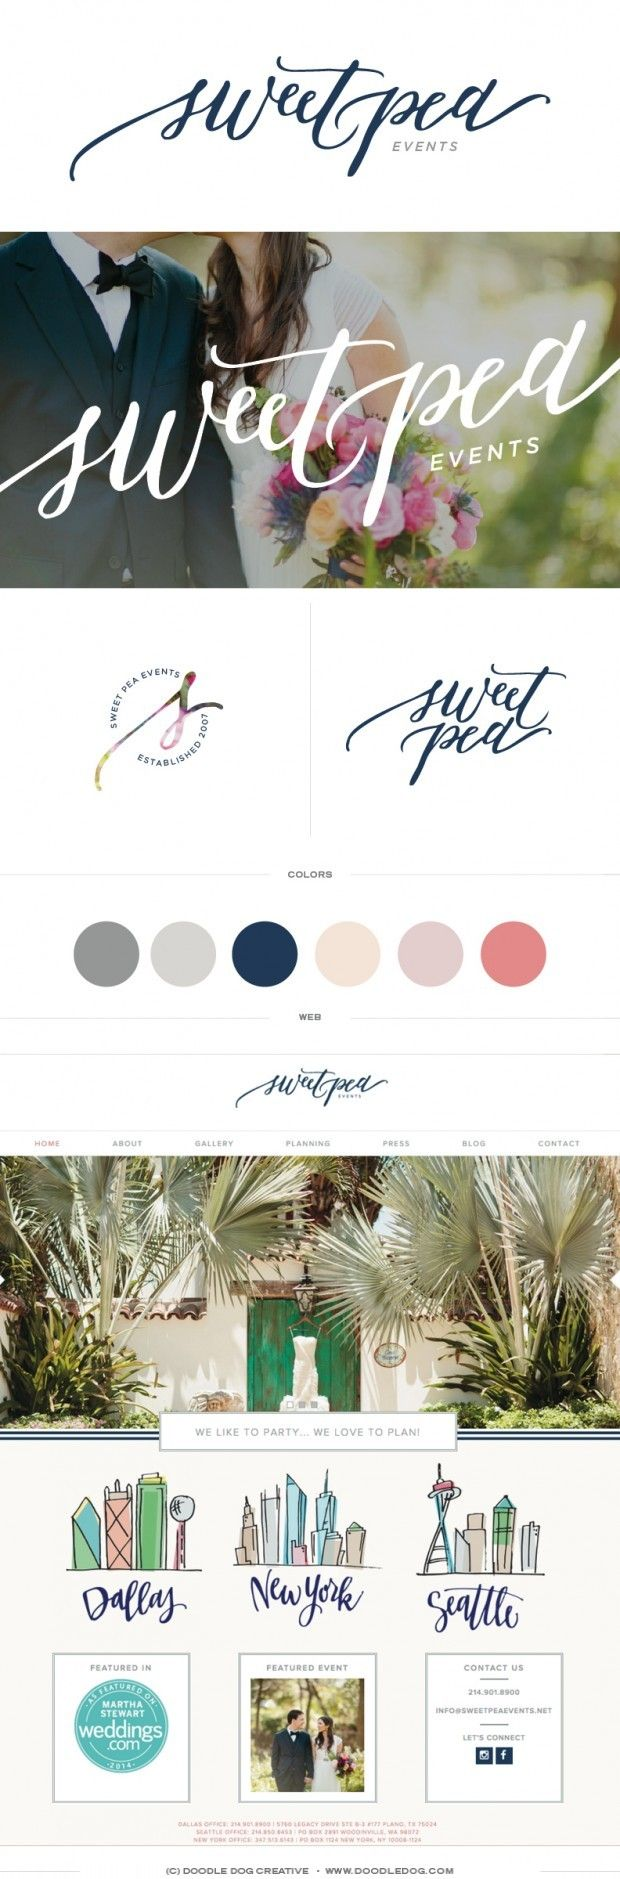 The beautiful, classy, new brand design for Sweetpea Events is here! If you've  been a fan for a while, you may remember seeing the original Sweetpea rebrand abo